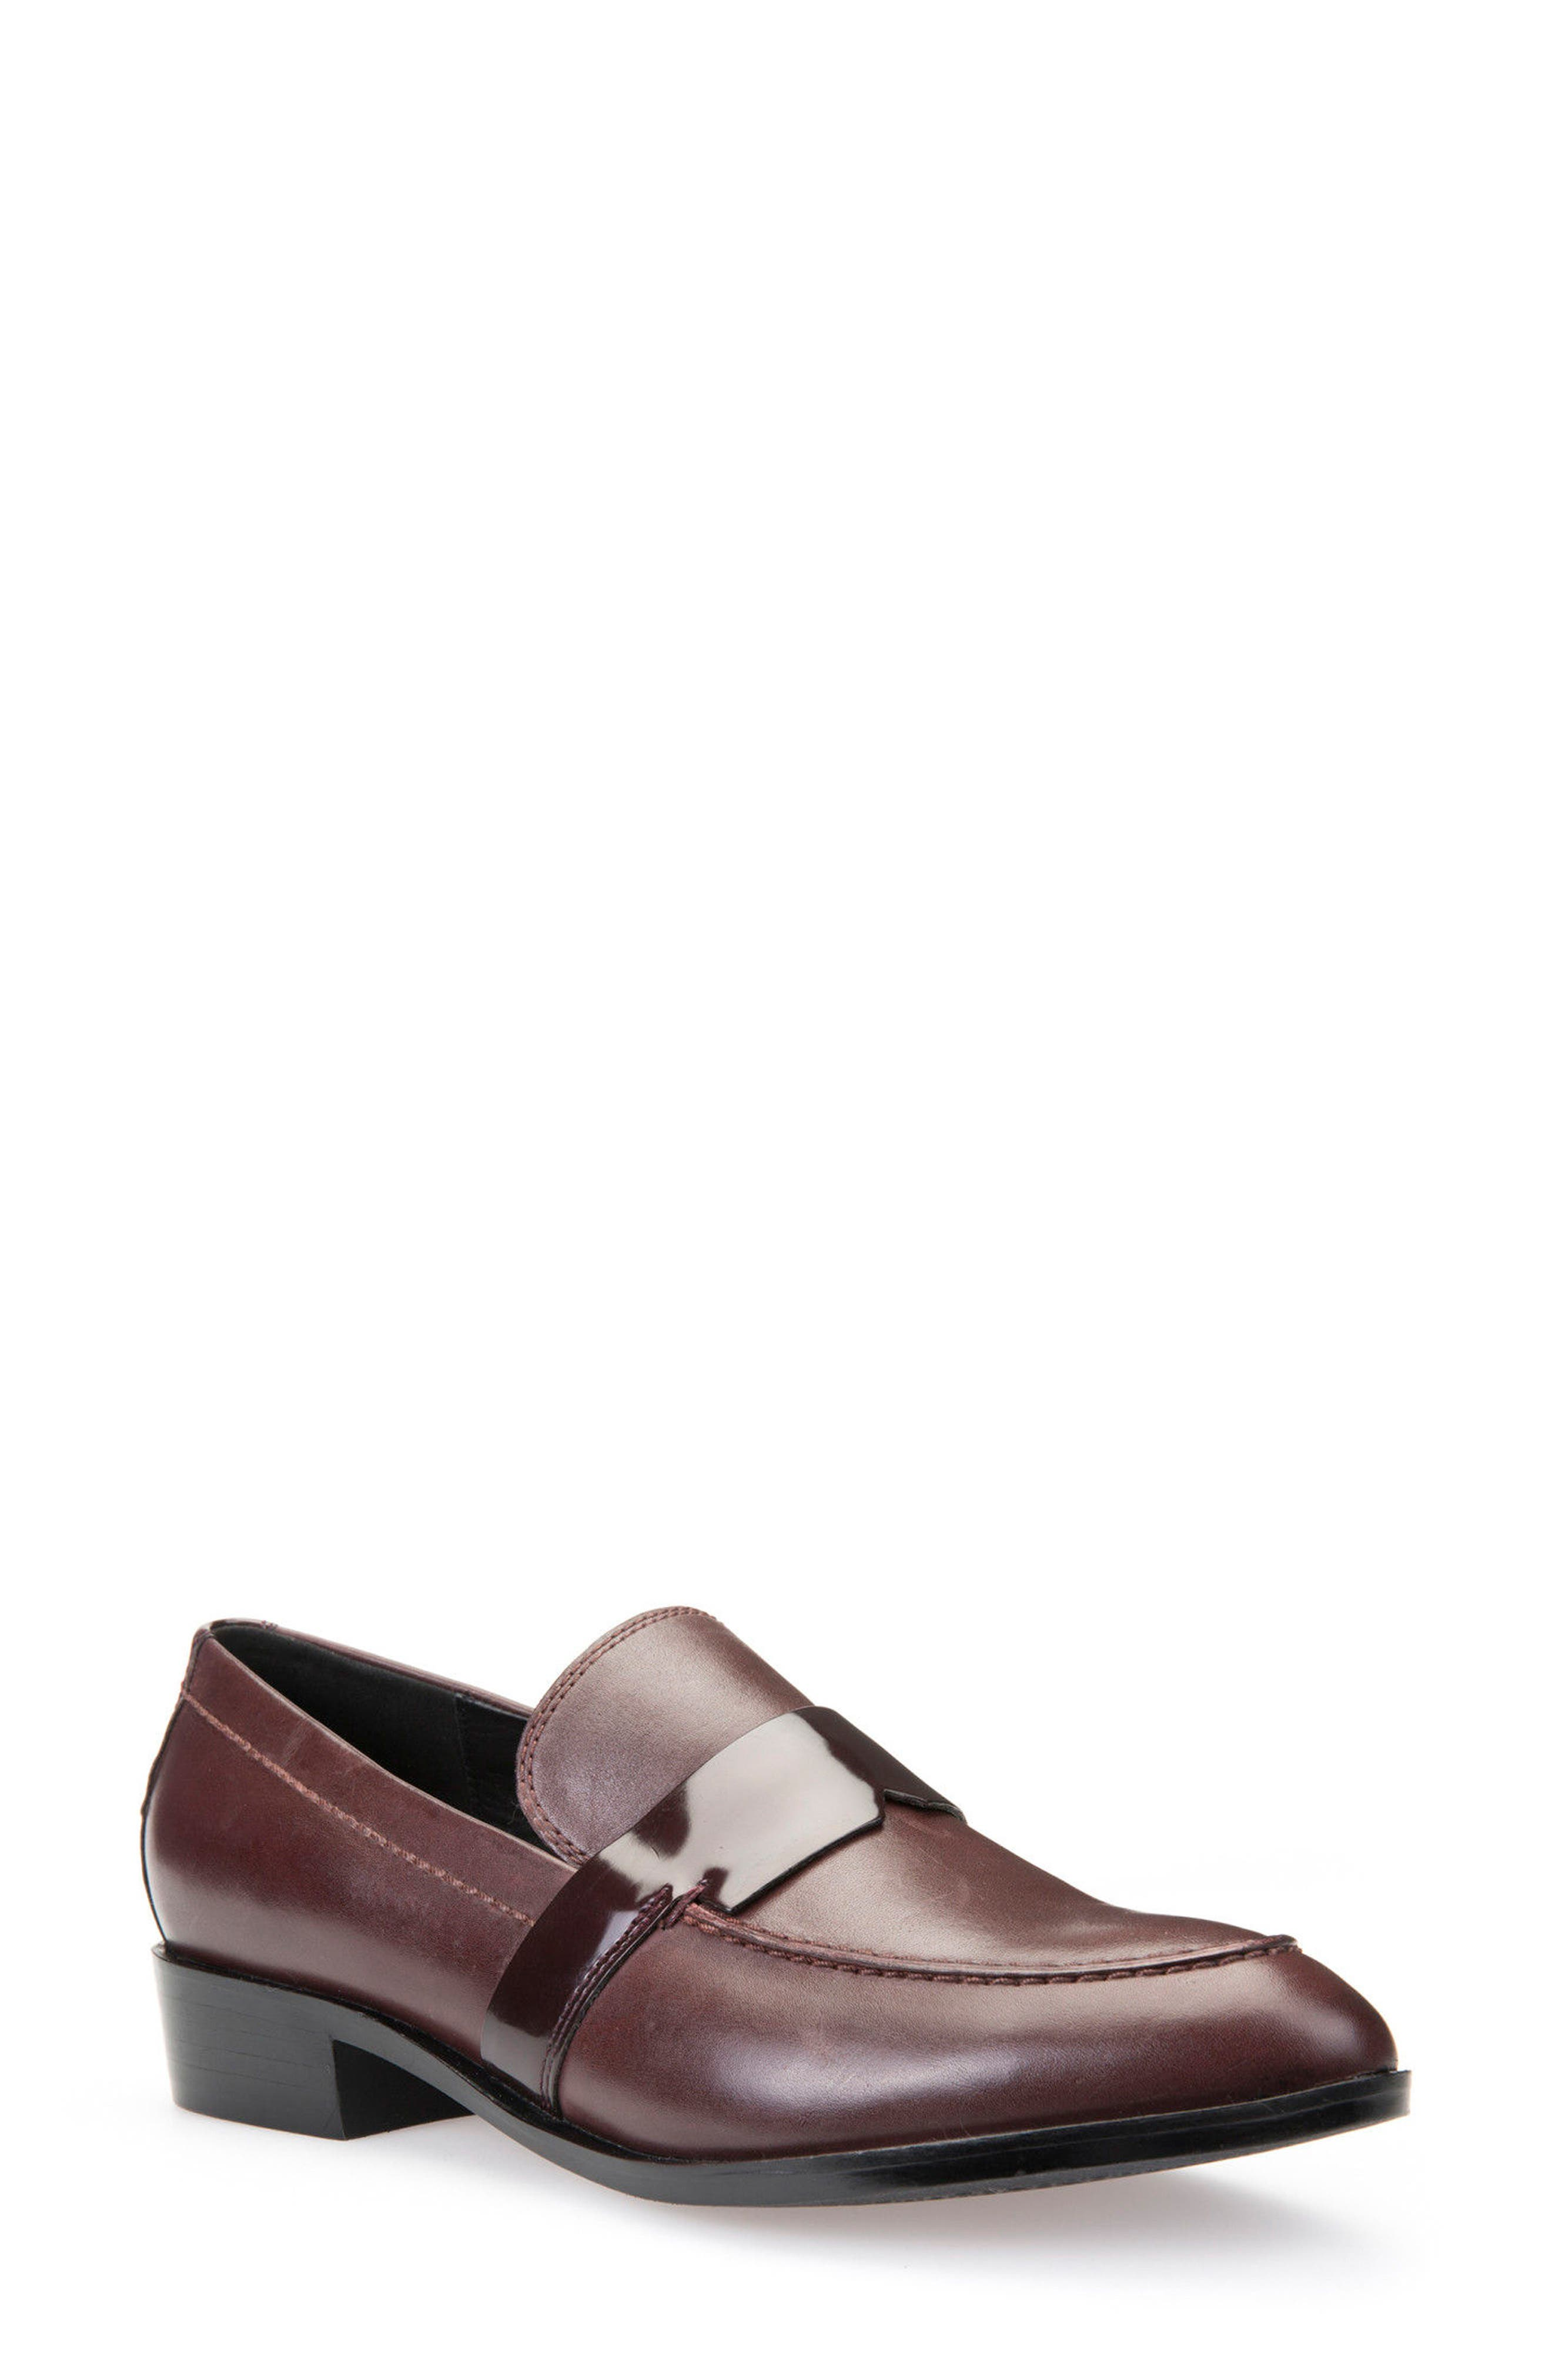 Alternate Image 1 Selected - Geox Lover Loafer (Women)